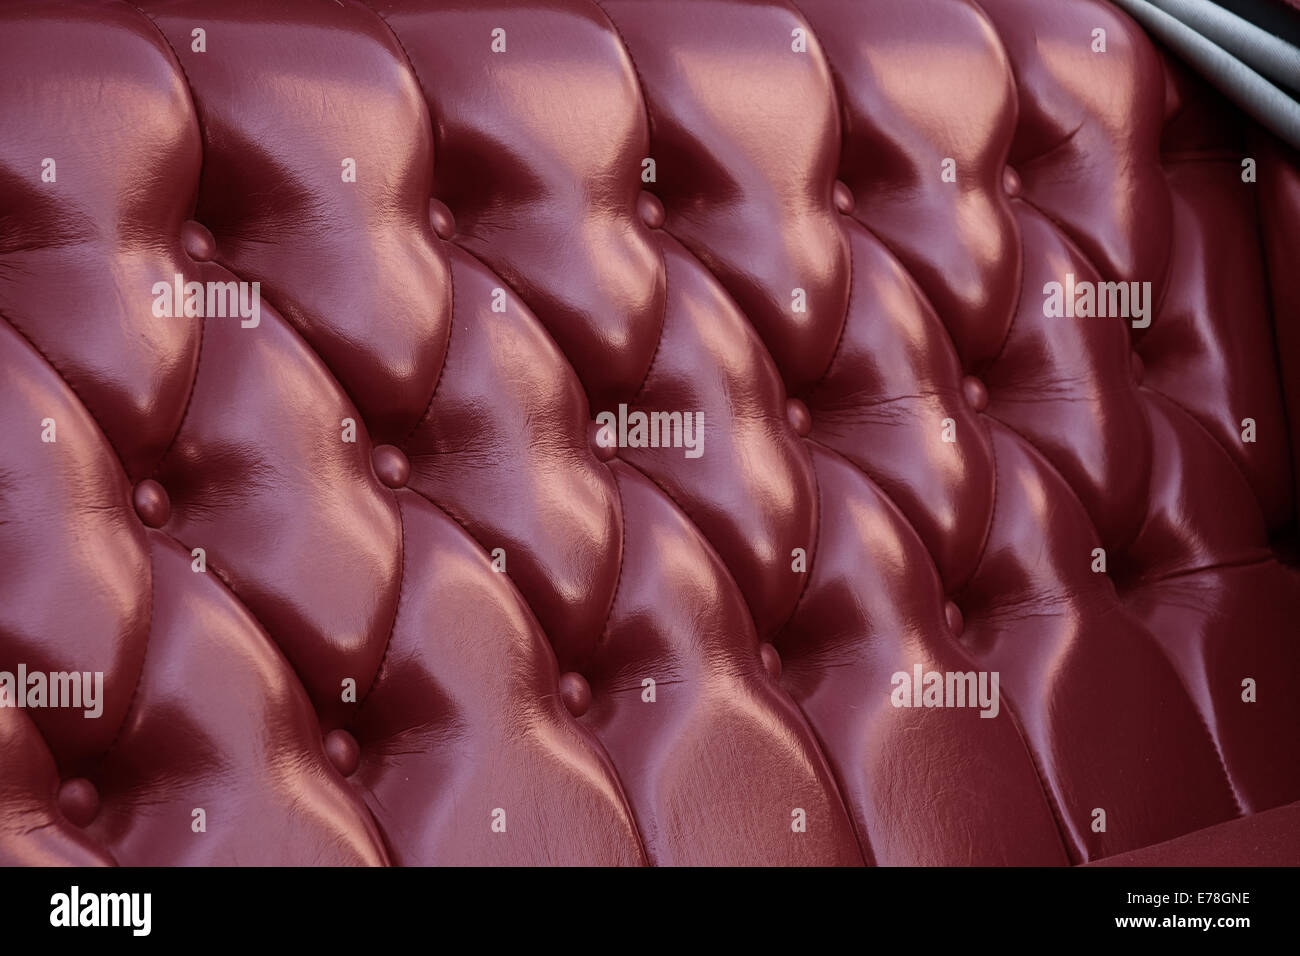 Leather Upholstery Stockfotos & Leather Upholstery Bilder - Alamy